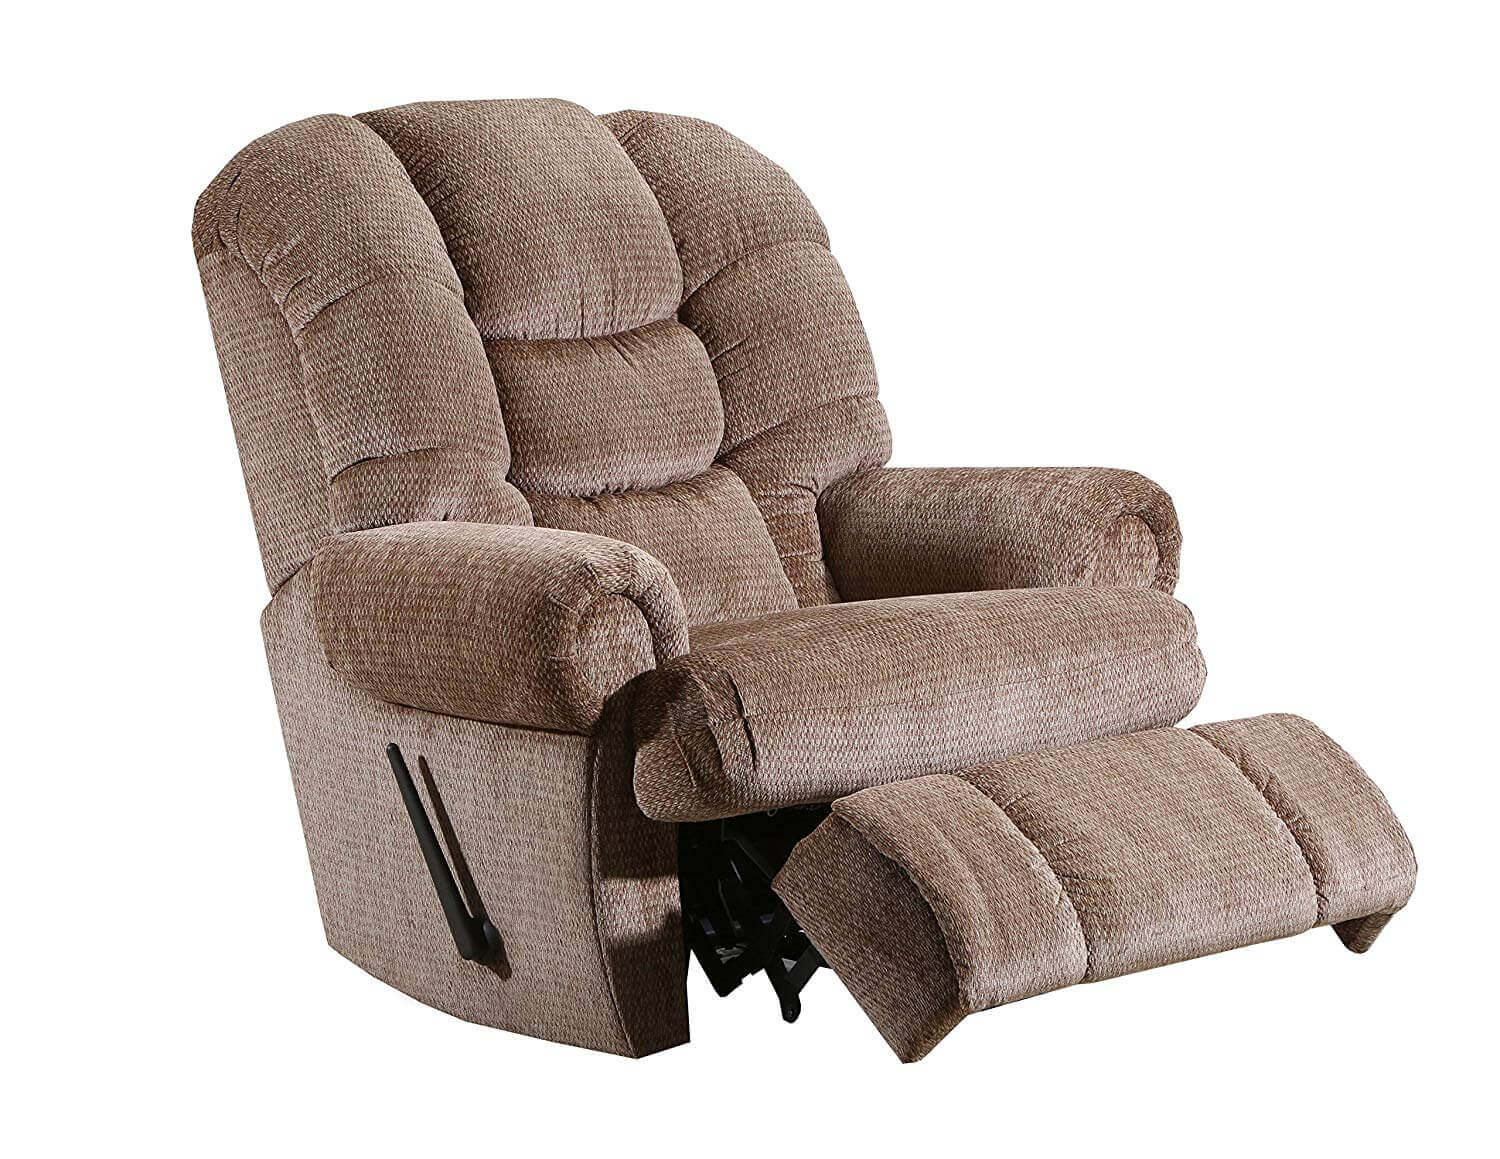 Magnificent 5 Best Recliners For Sleeping Like A Baby Reviews And Machost Co Dining Chair Design Ideas Machostcouk